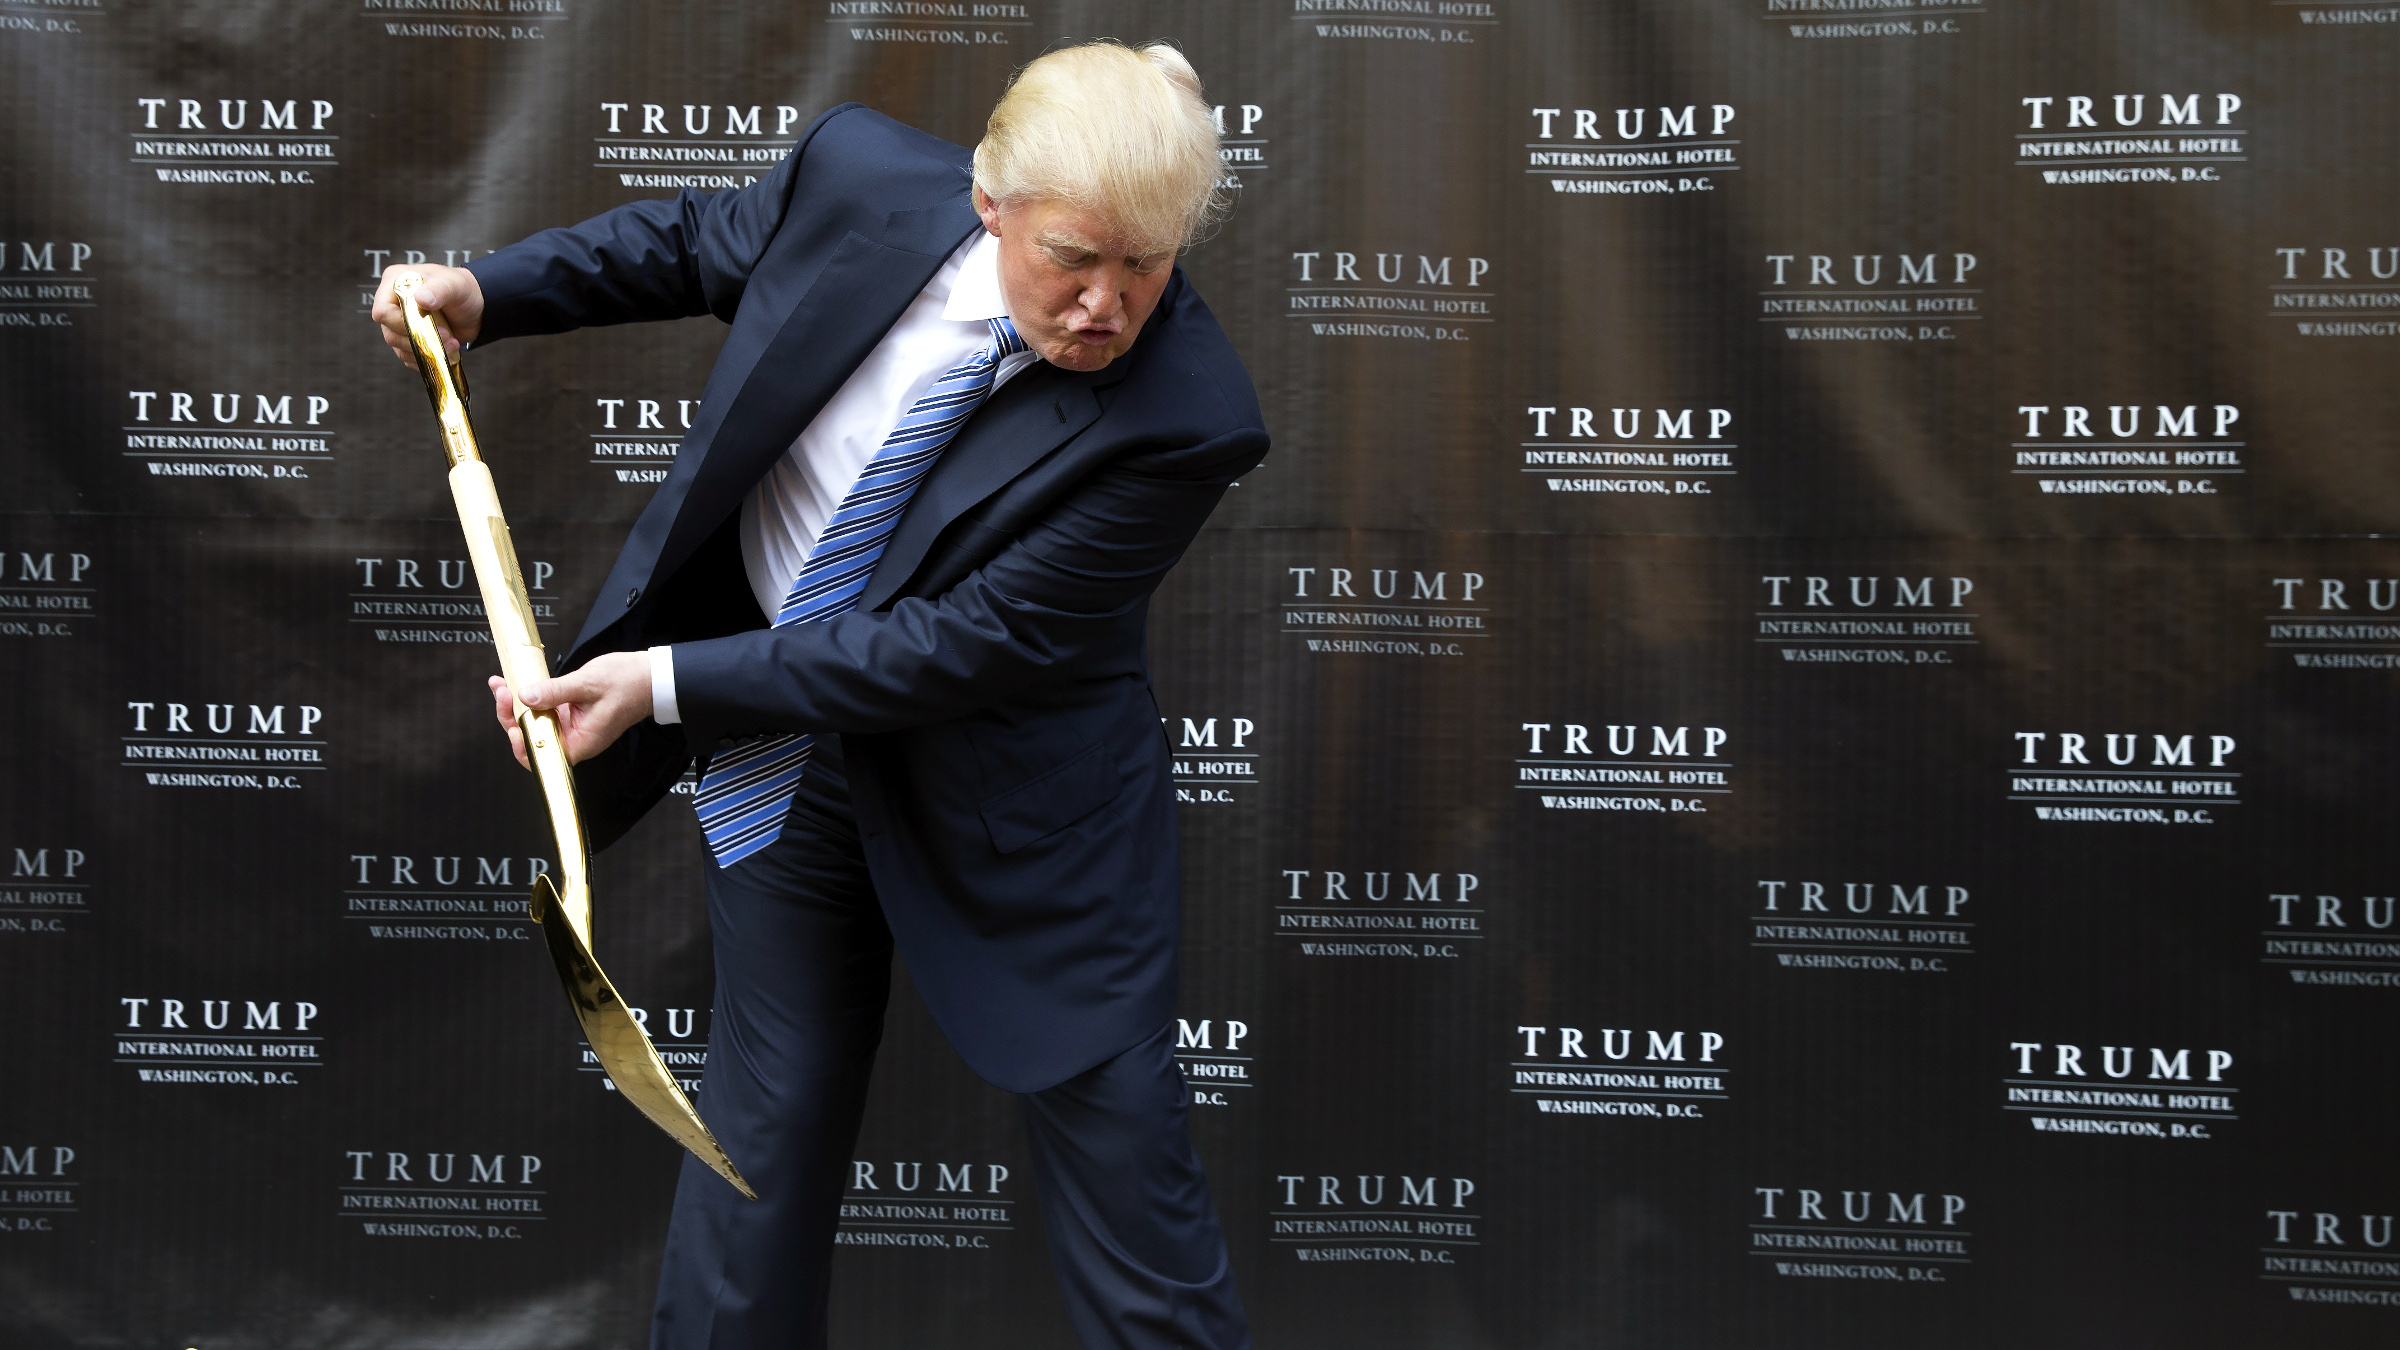 Donald Trump takes part in a ground breaking ceremony for the Trump International Hotel on the site of the Old Post Office, in Washington, Wednesday, July 23, 2014.